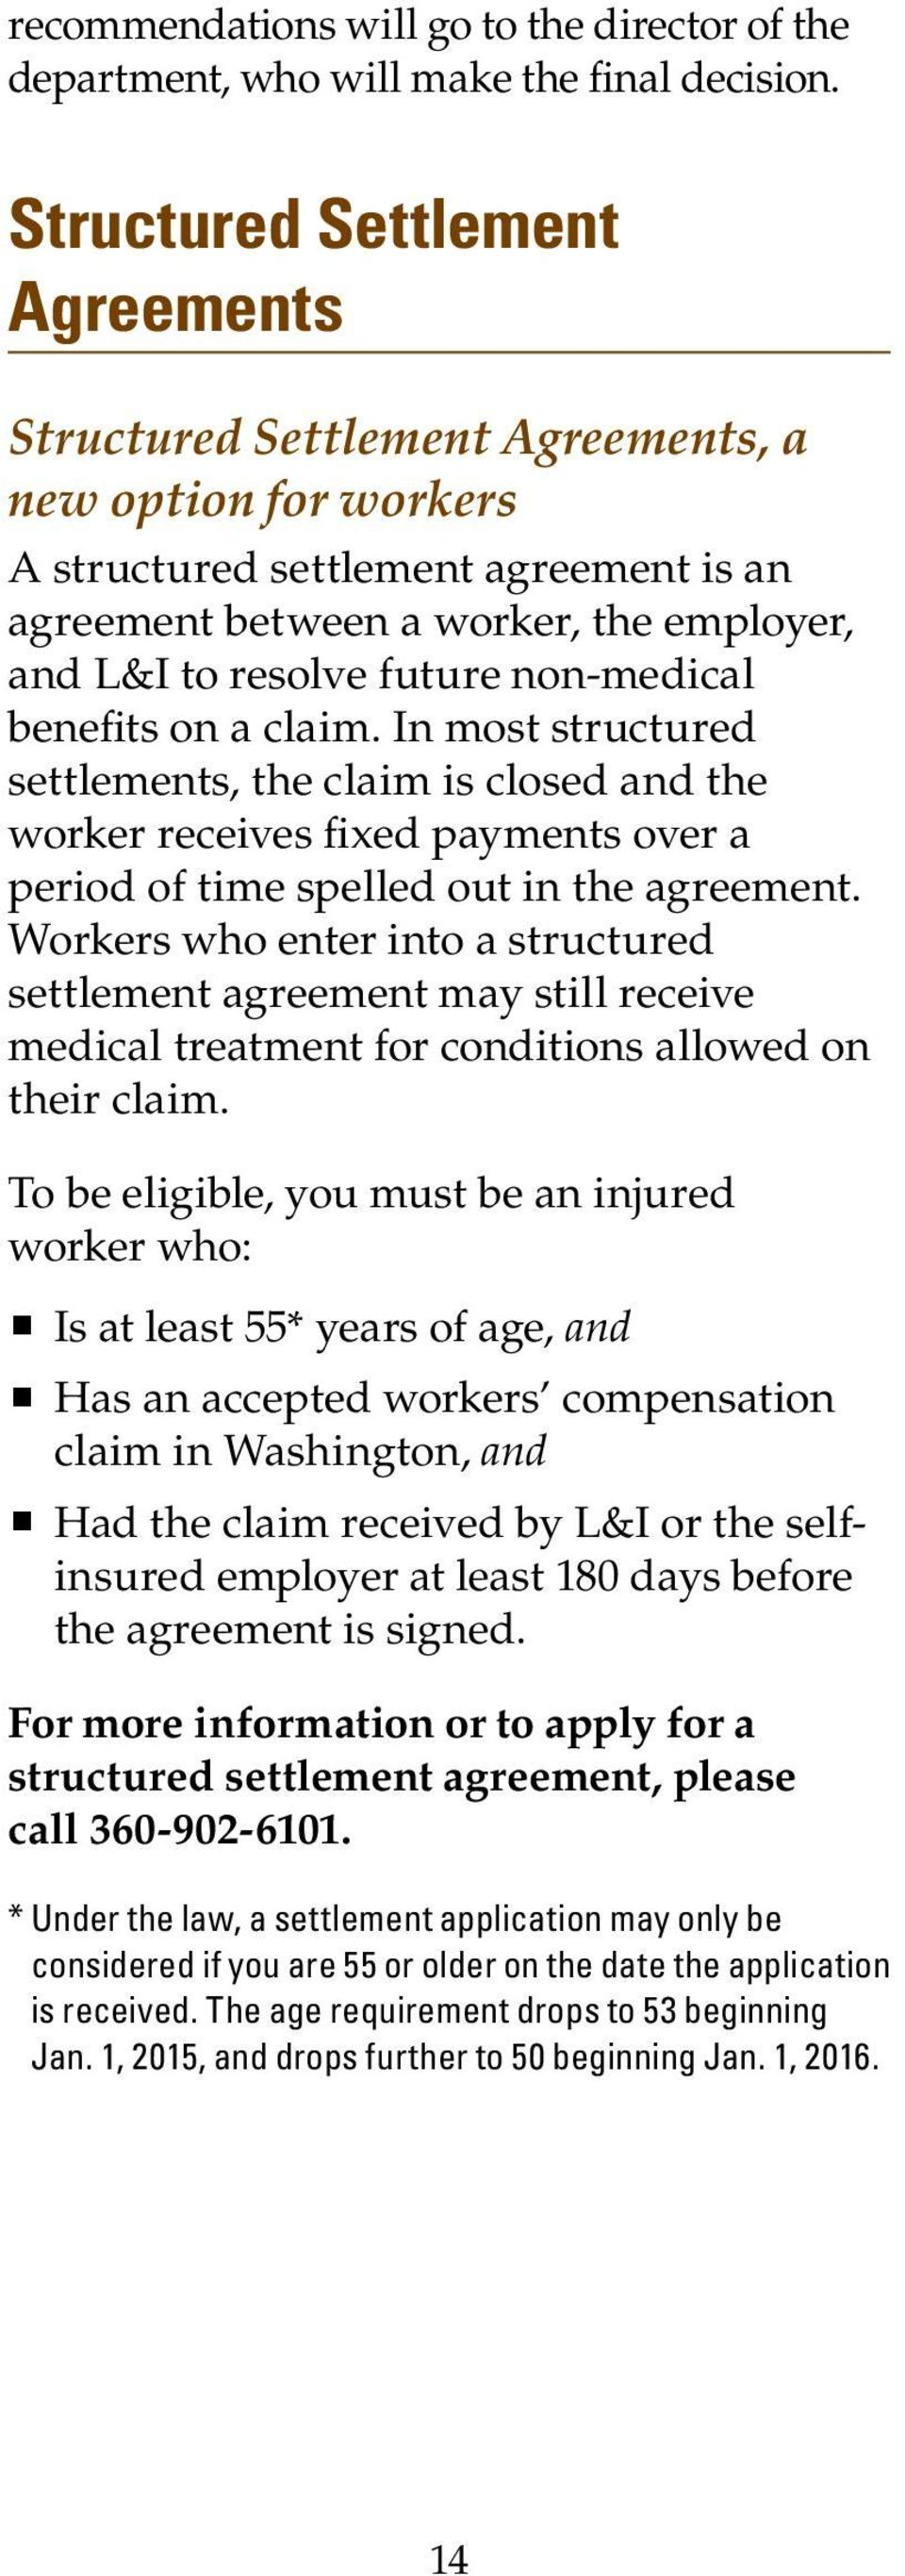 non-medical benefits on a claim. In most structured settlements, the claim is closed and the worker receives fixed payments over a period of time spelled out in the agreement.